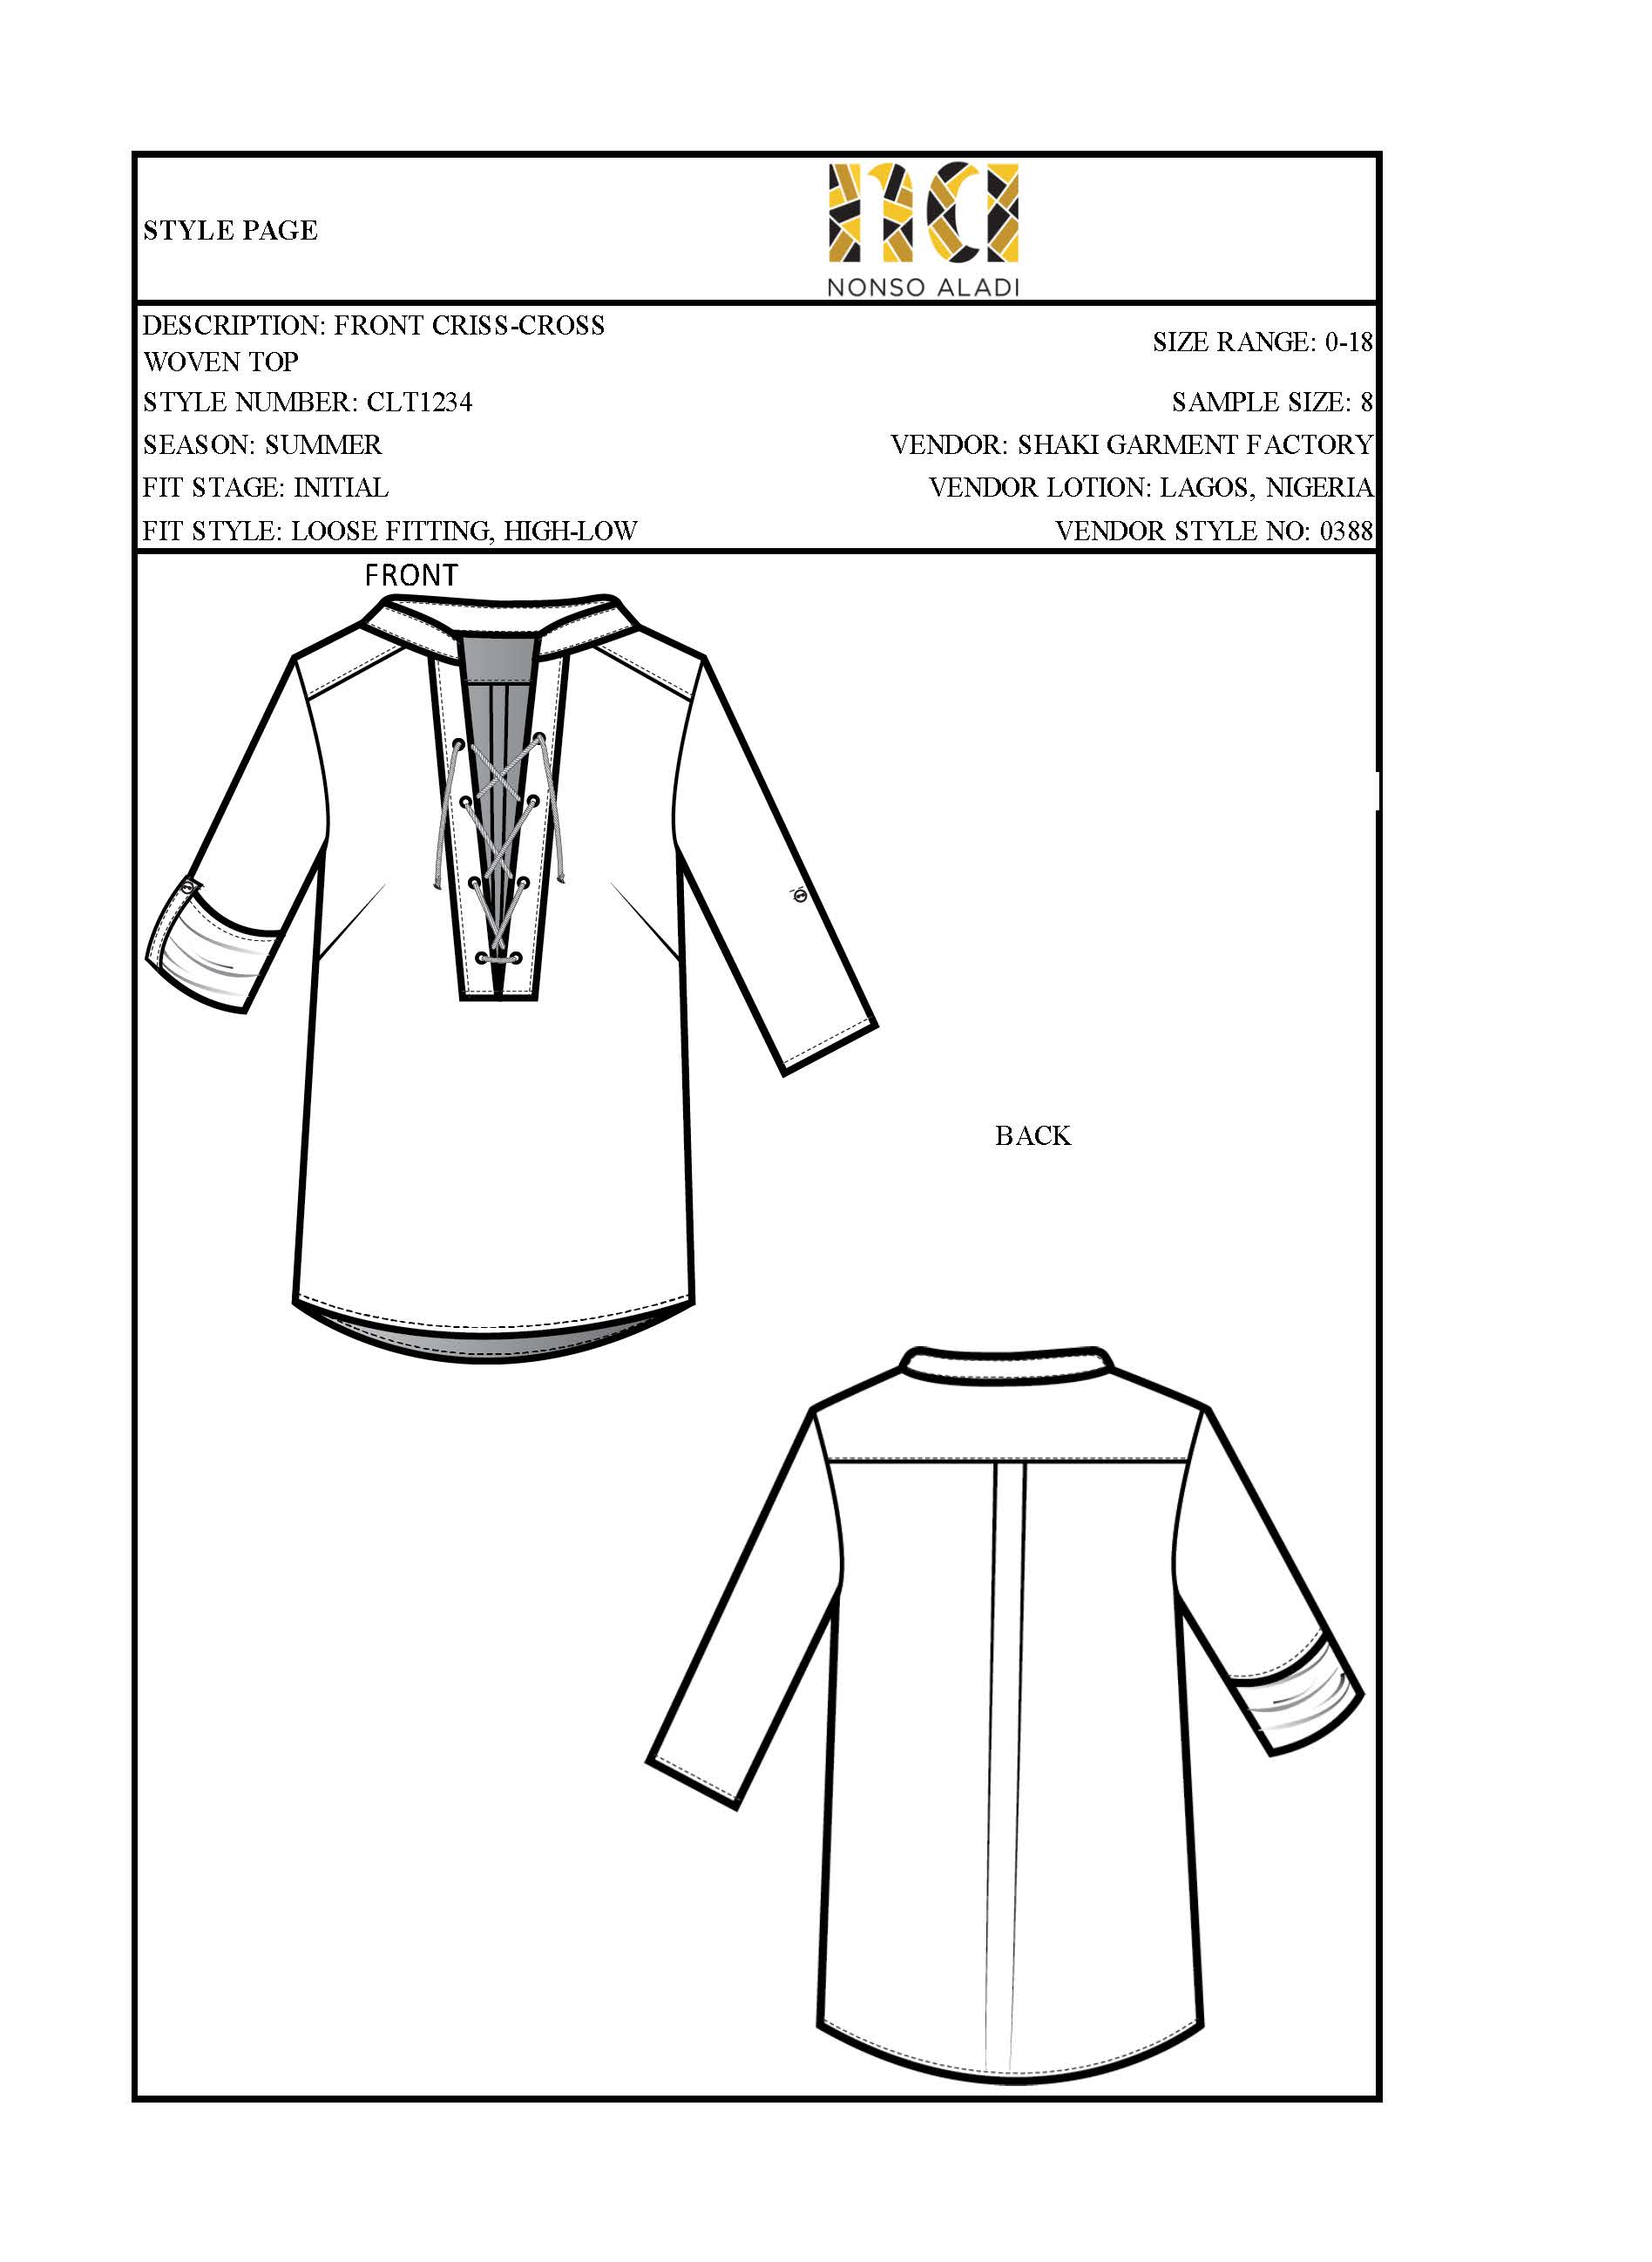 Blouse page_Page_01.jpg